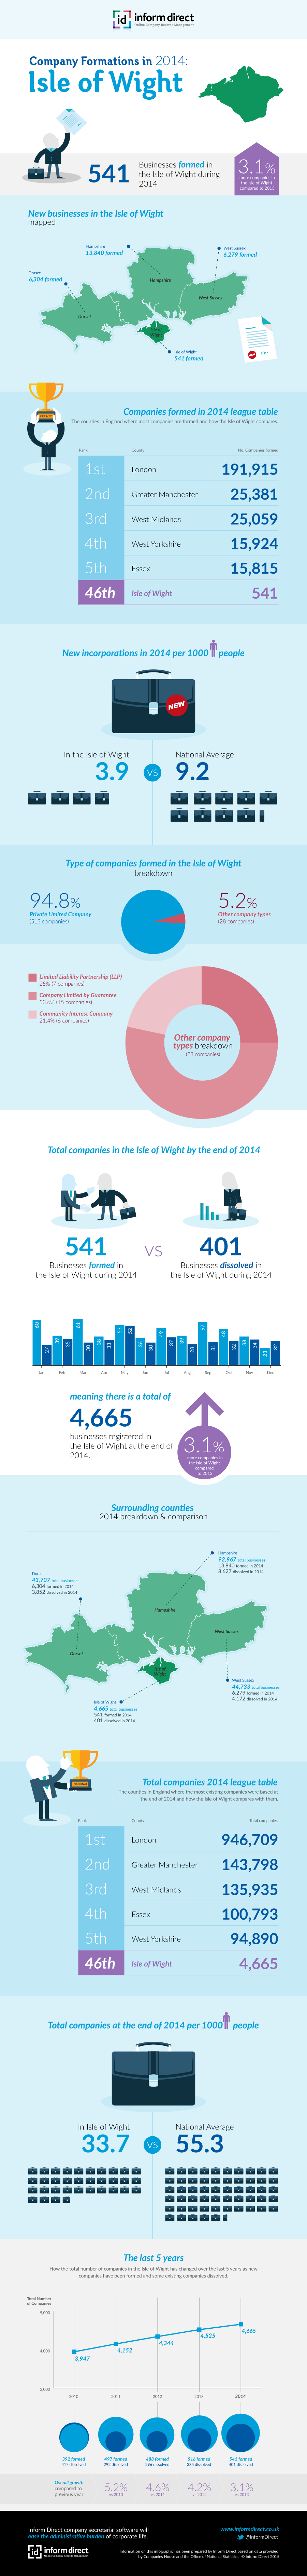 Inform Direct - Company Formations in Isle of Wight 2014 Infographic